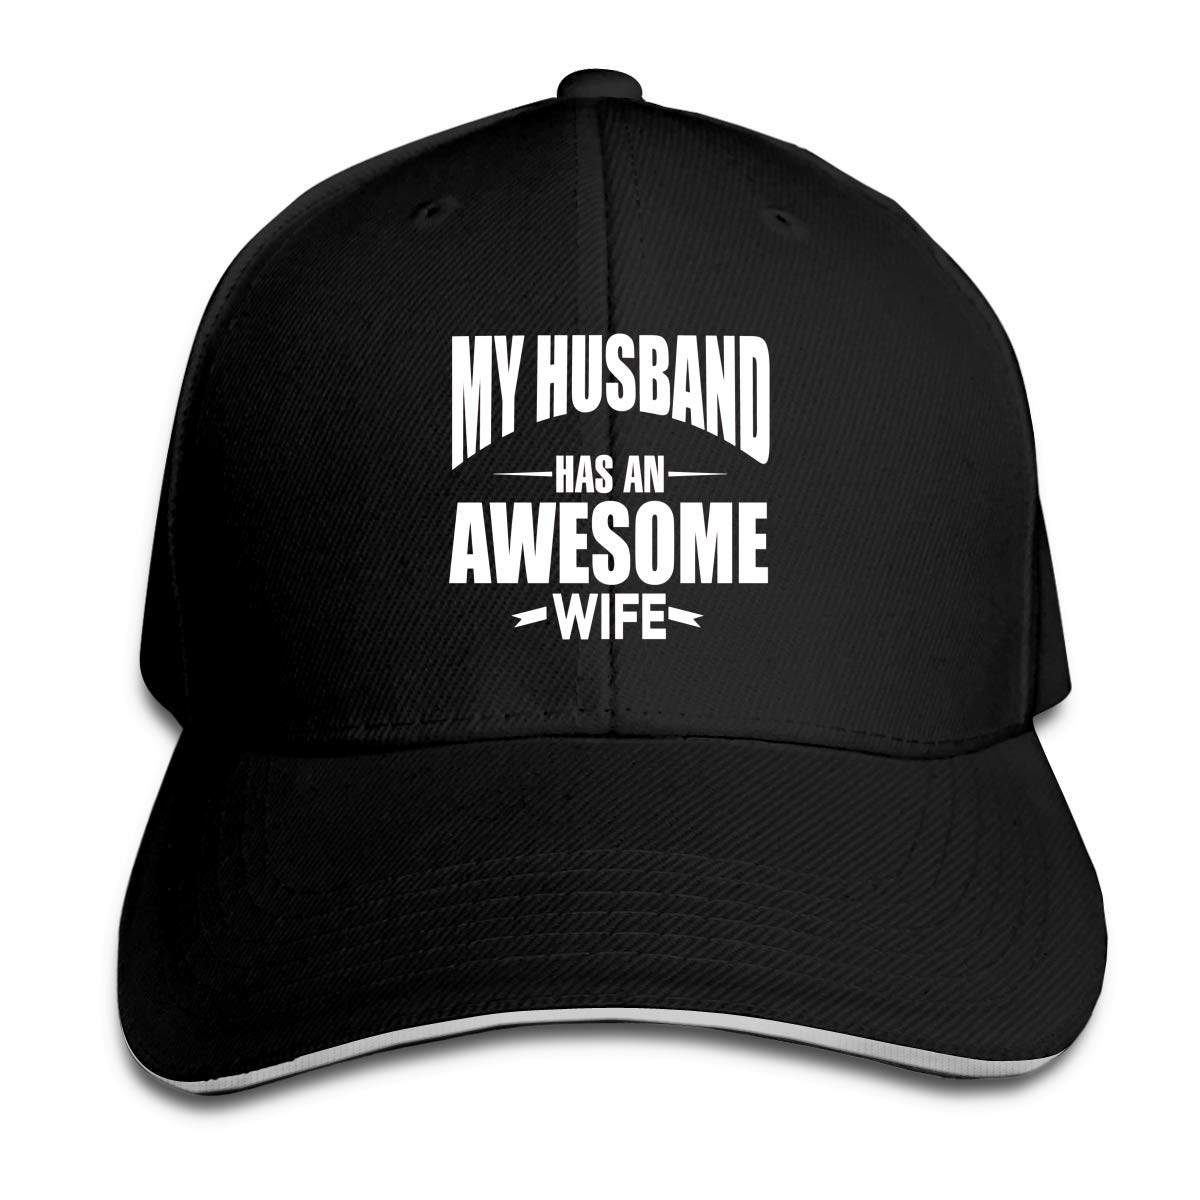 My Husband Has an Awesome Wife Logo Classic Adjustable Cotton Baseball Caps Trucker Driver Hat Outdoor Cap Black